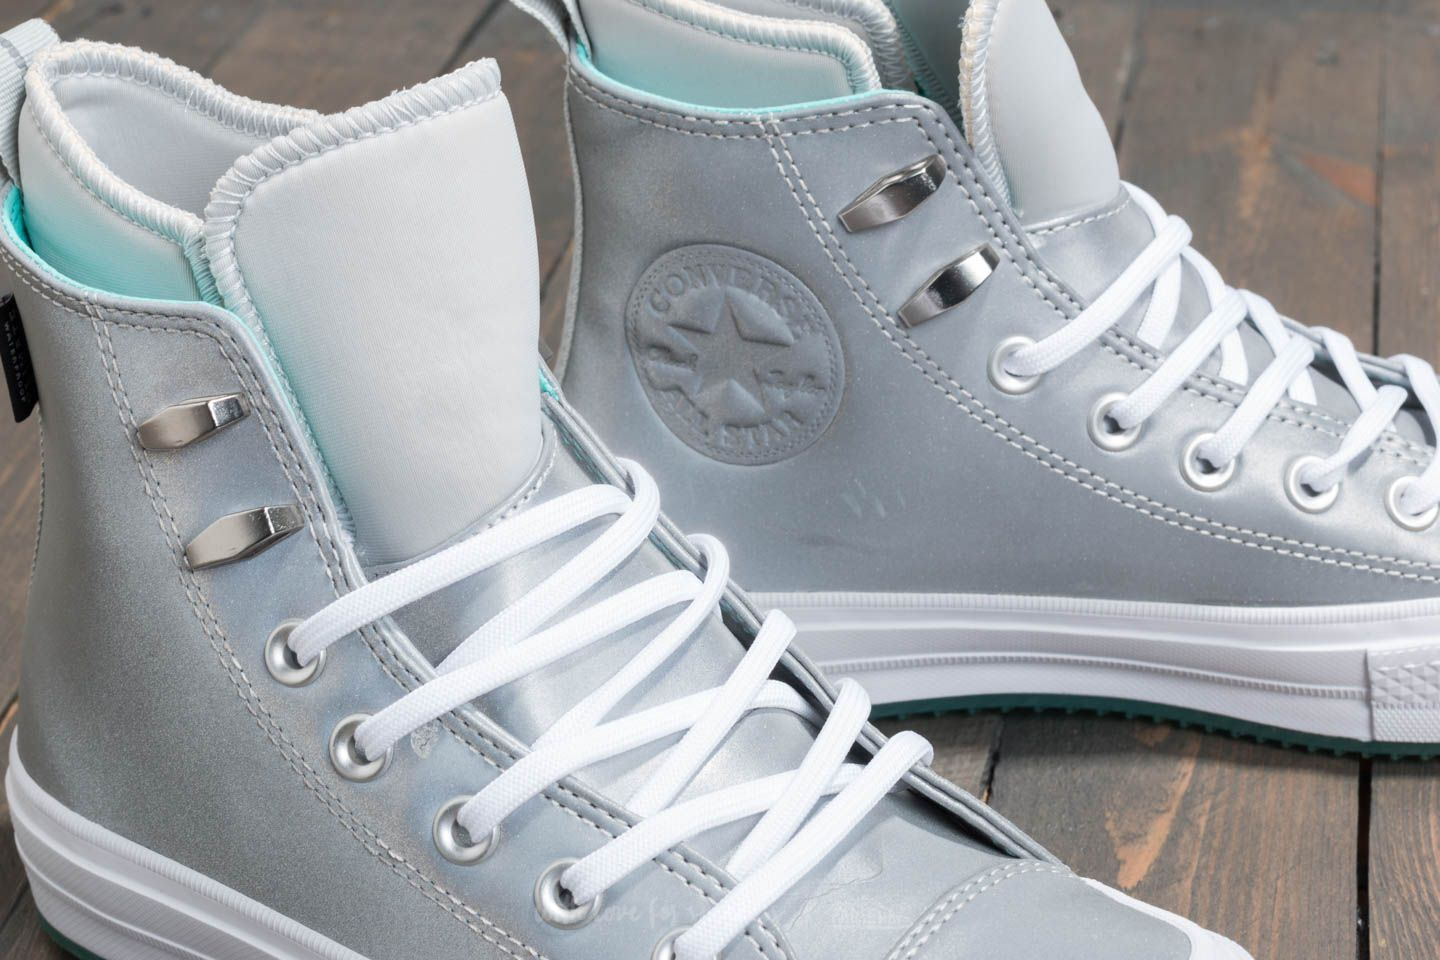 5cbe7a3f919 ... australia converse chuck taylor all star waterproof boot hi pure  platinum light aqua white at 7b1f1